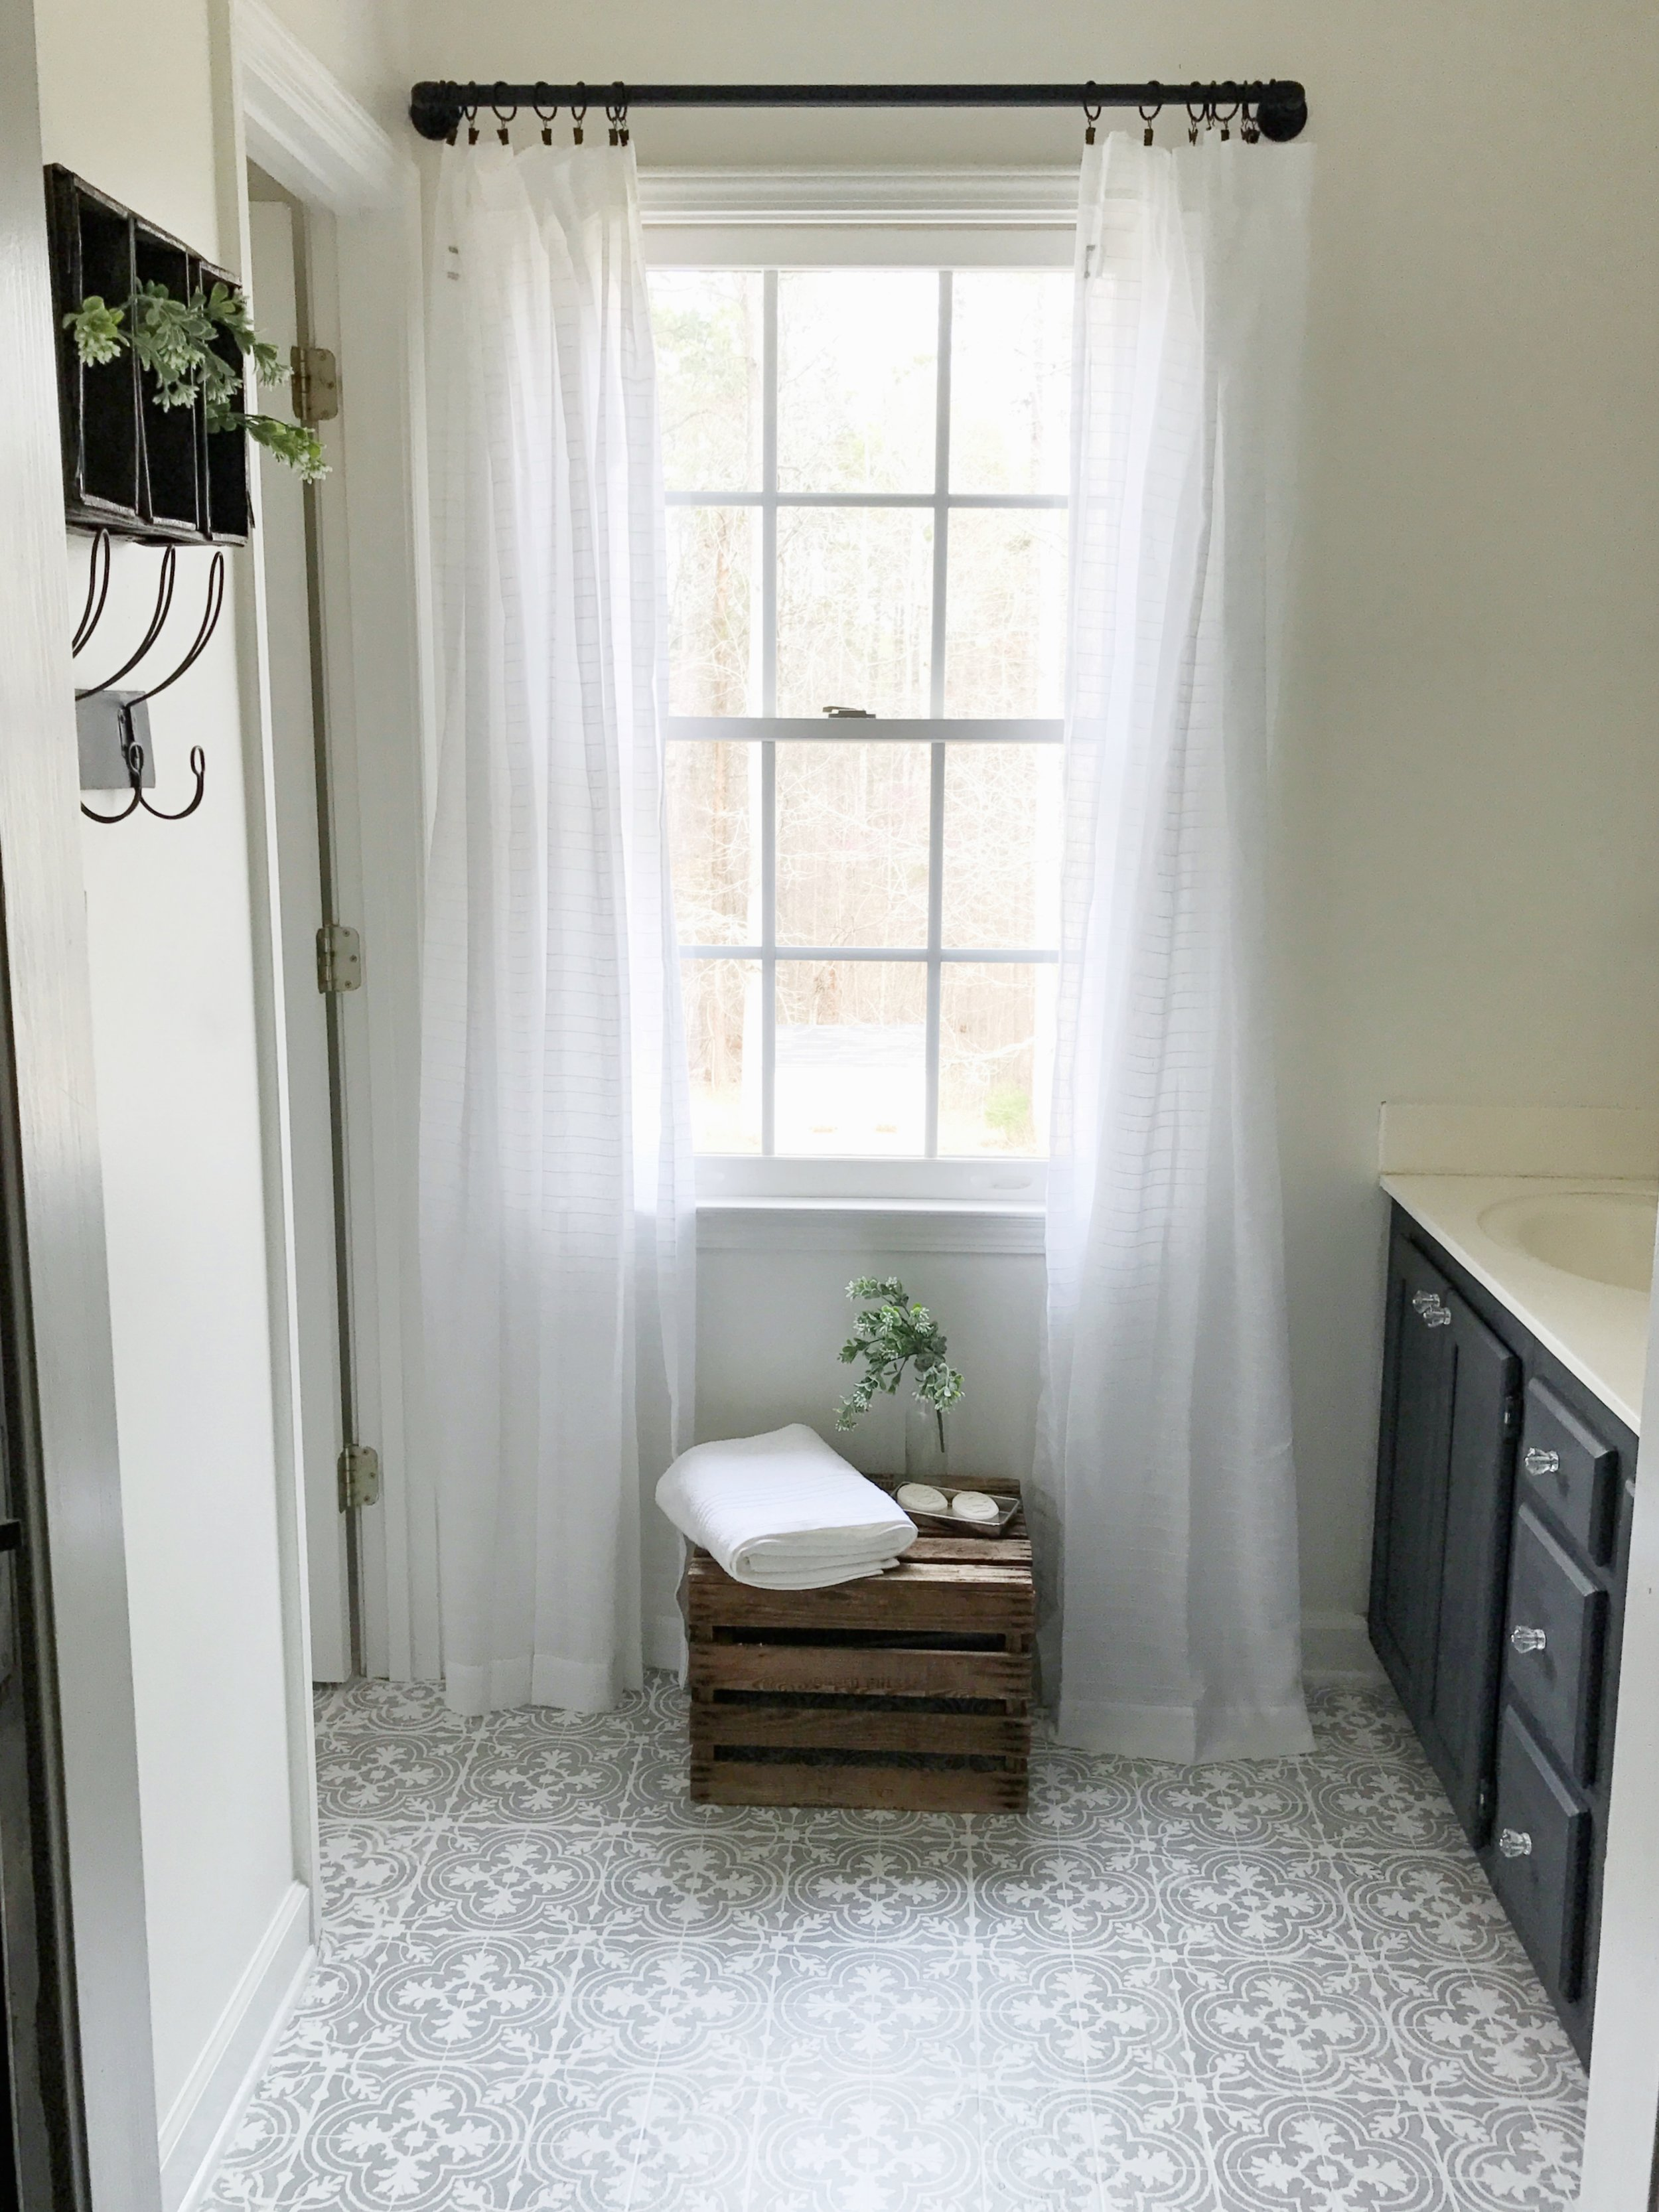 Full Tour- Weekend Budget Friendly Master Bathroom Makeover with Painted Floors by Plum Pretty Decor and Design